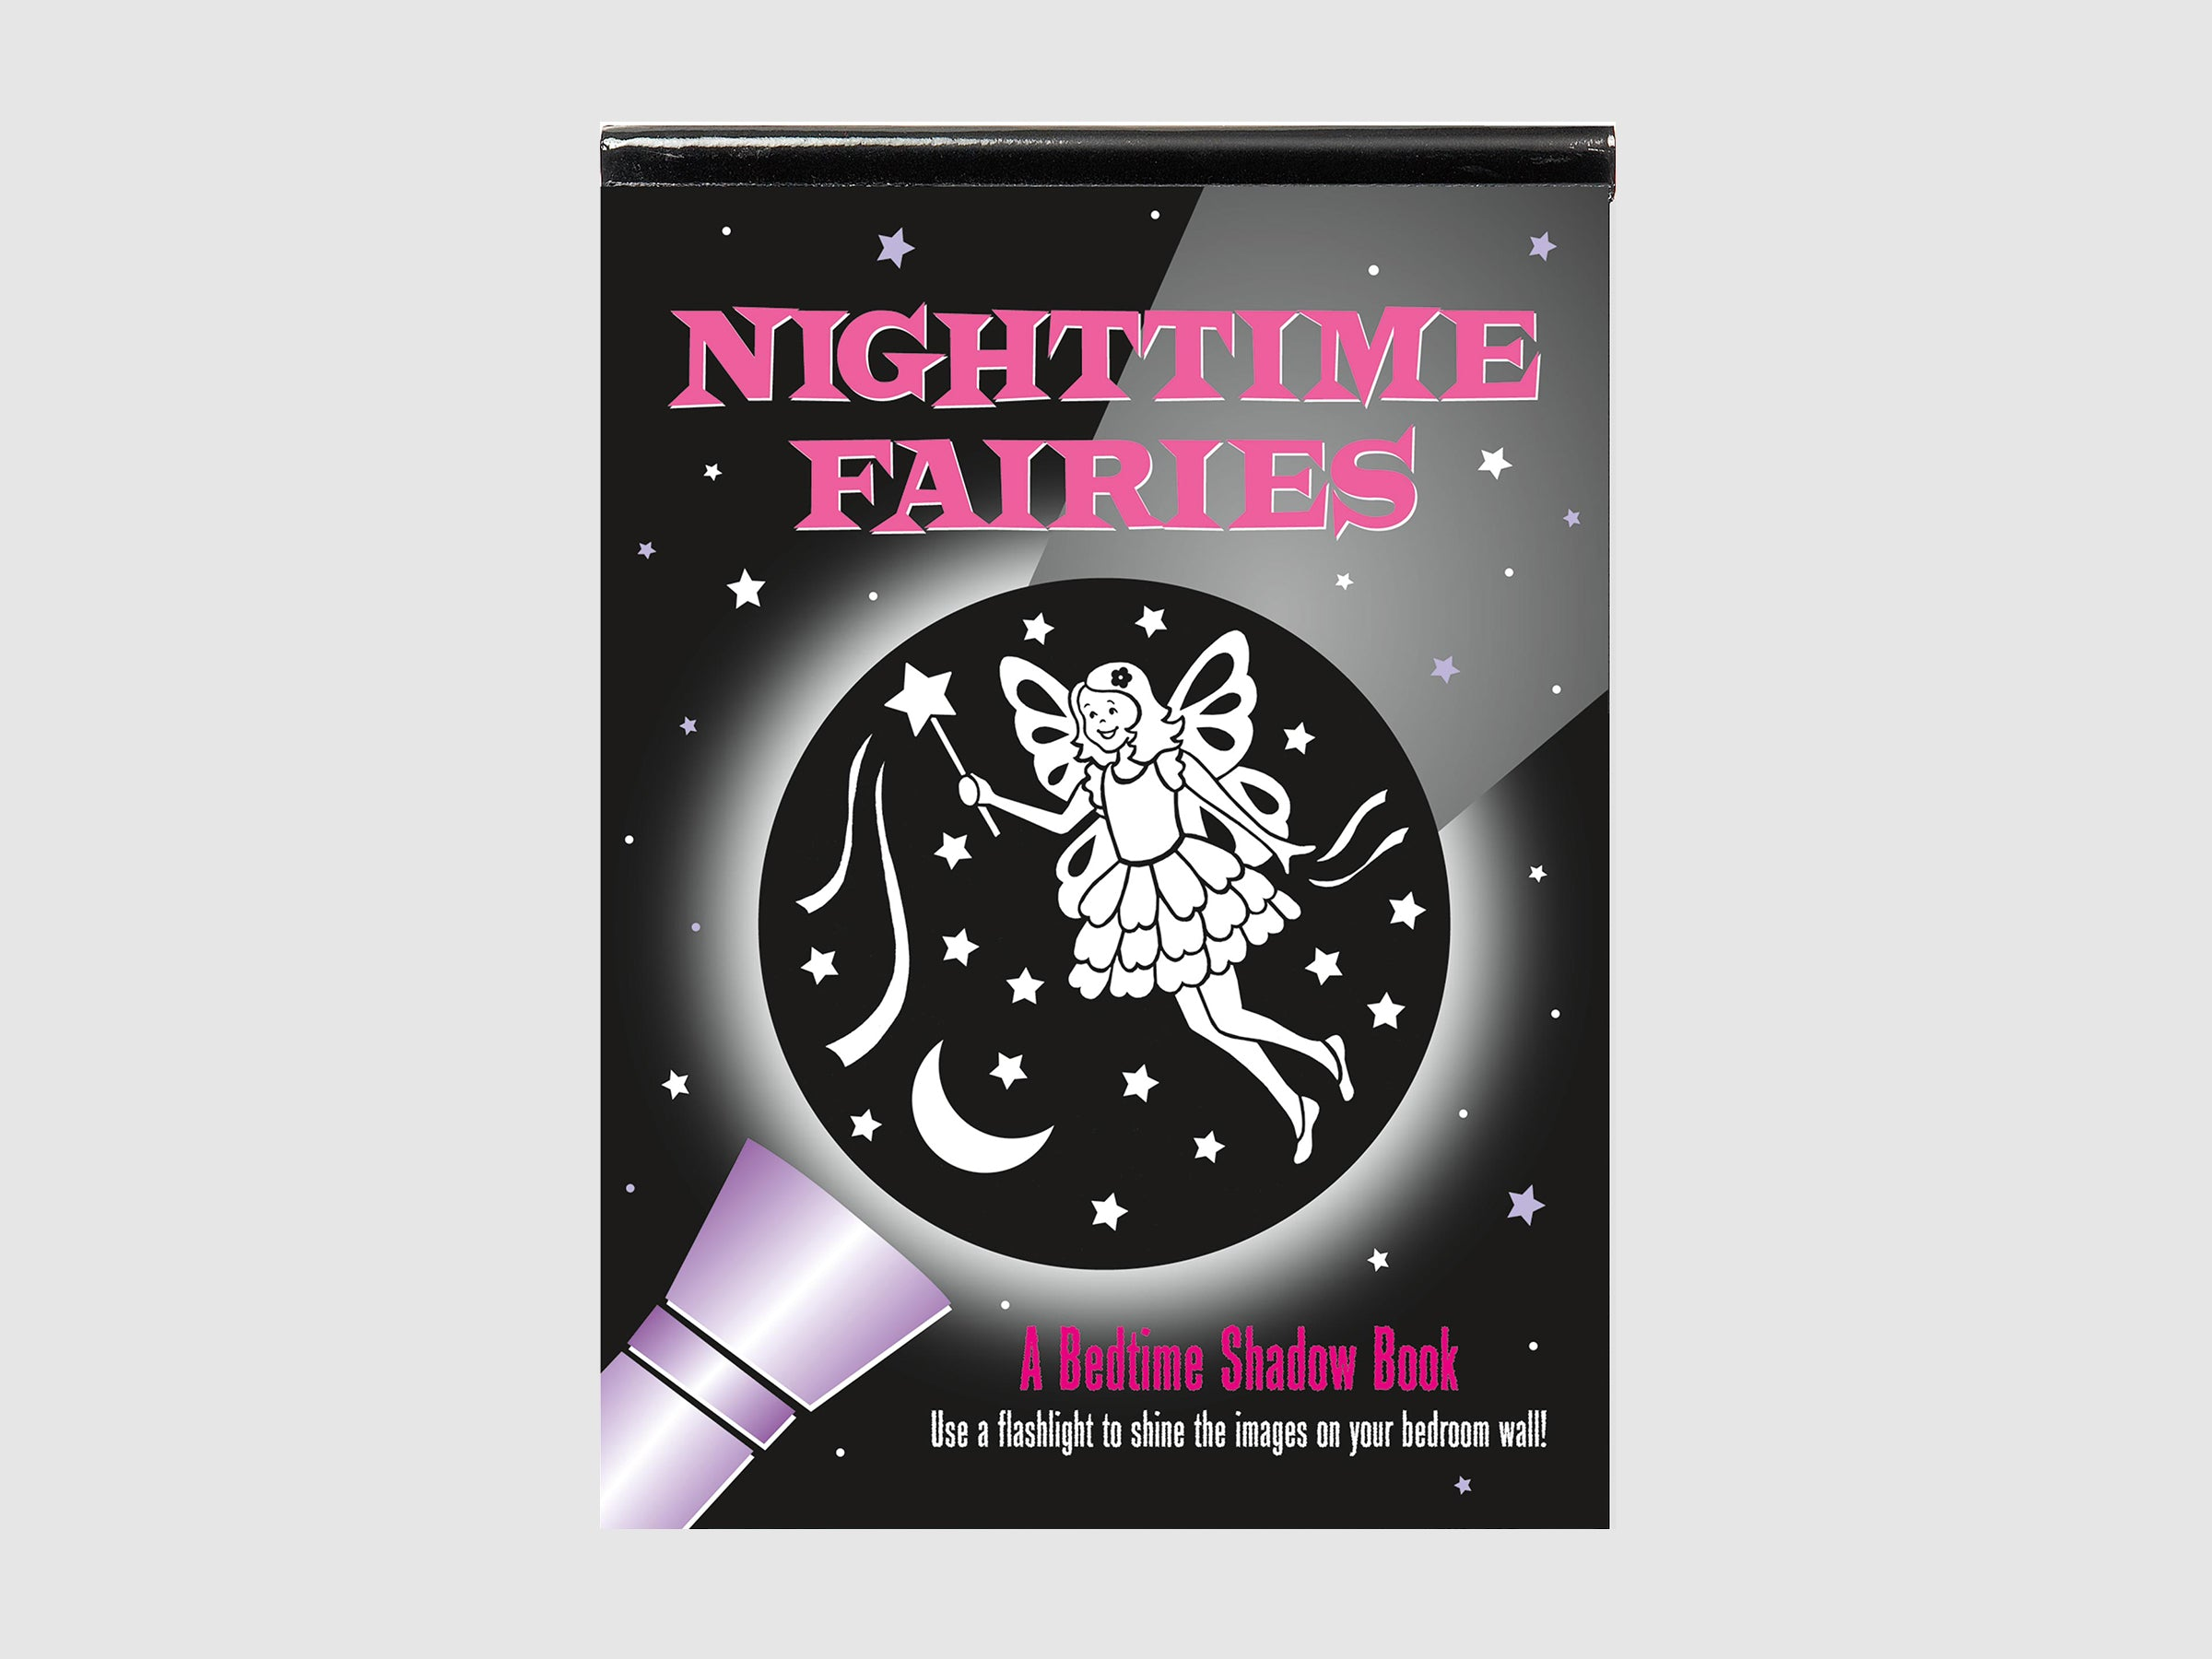 Nighttime Fairies